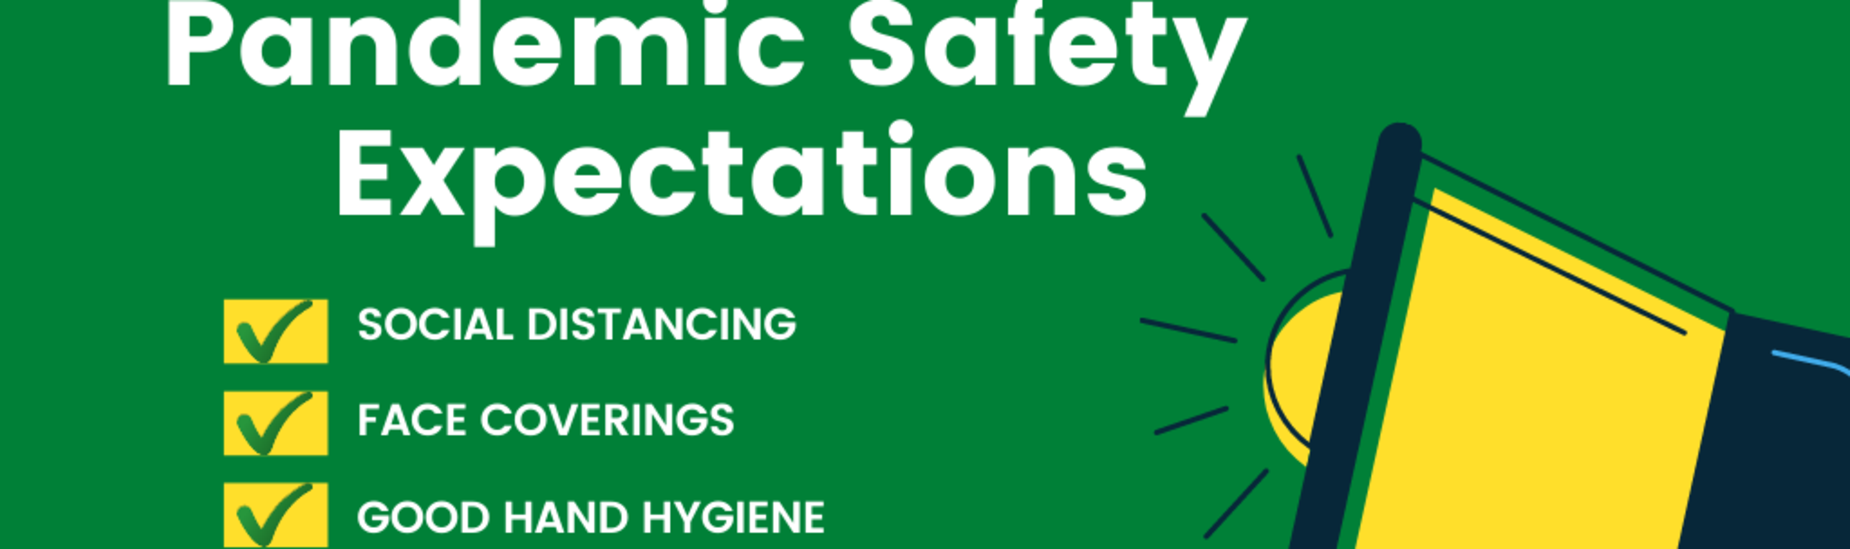 Safety Expectations